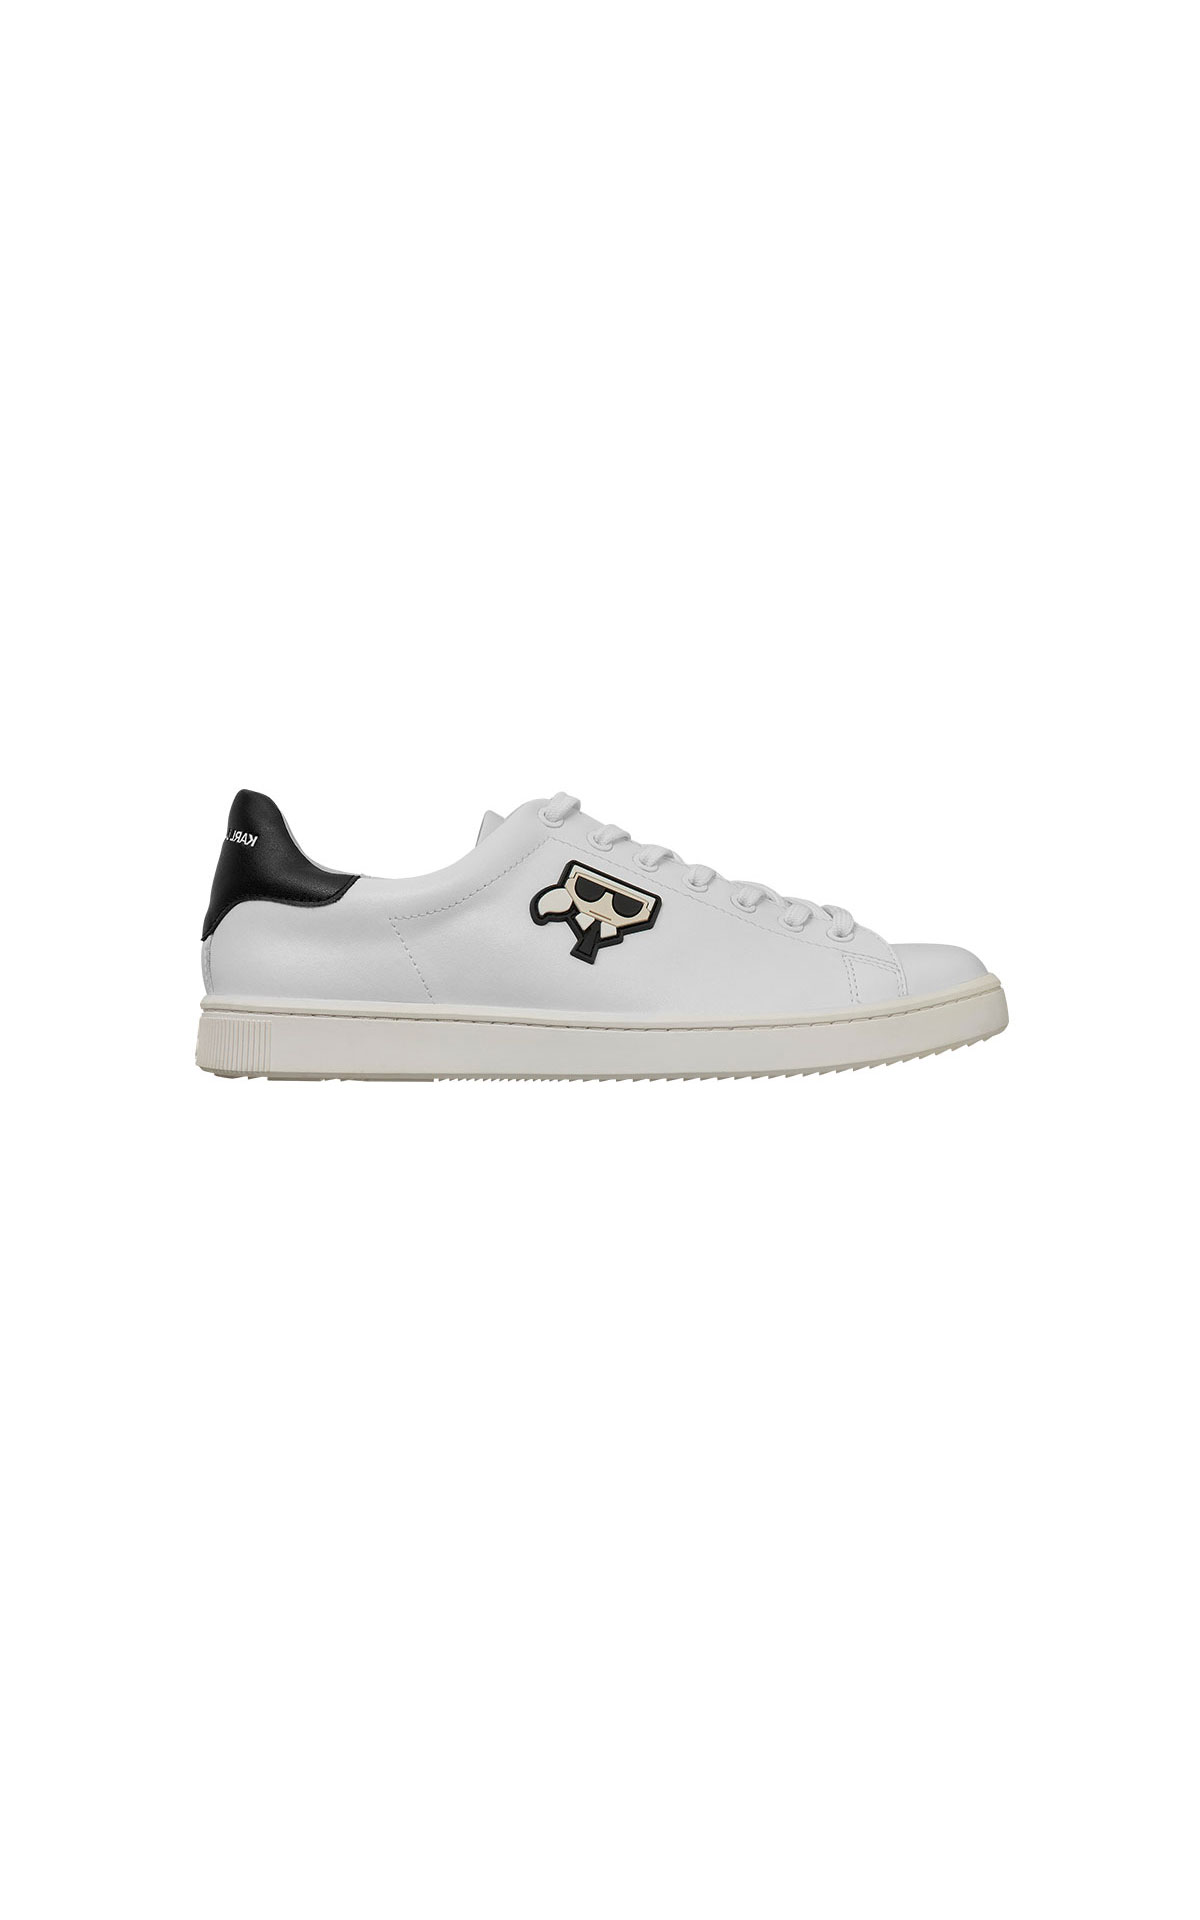 Karl Lagerfeld Kourt karl kocktail lace trainer from Bicester Village